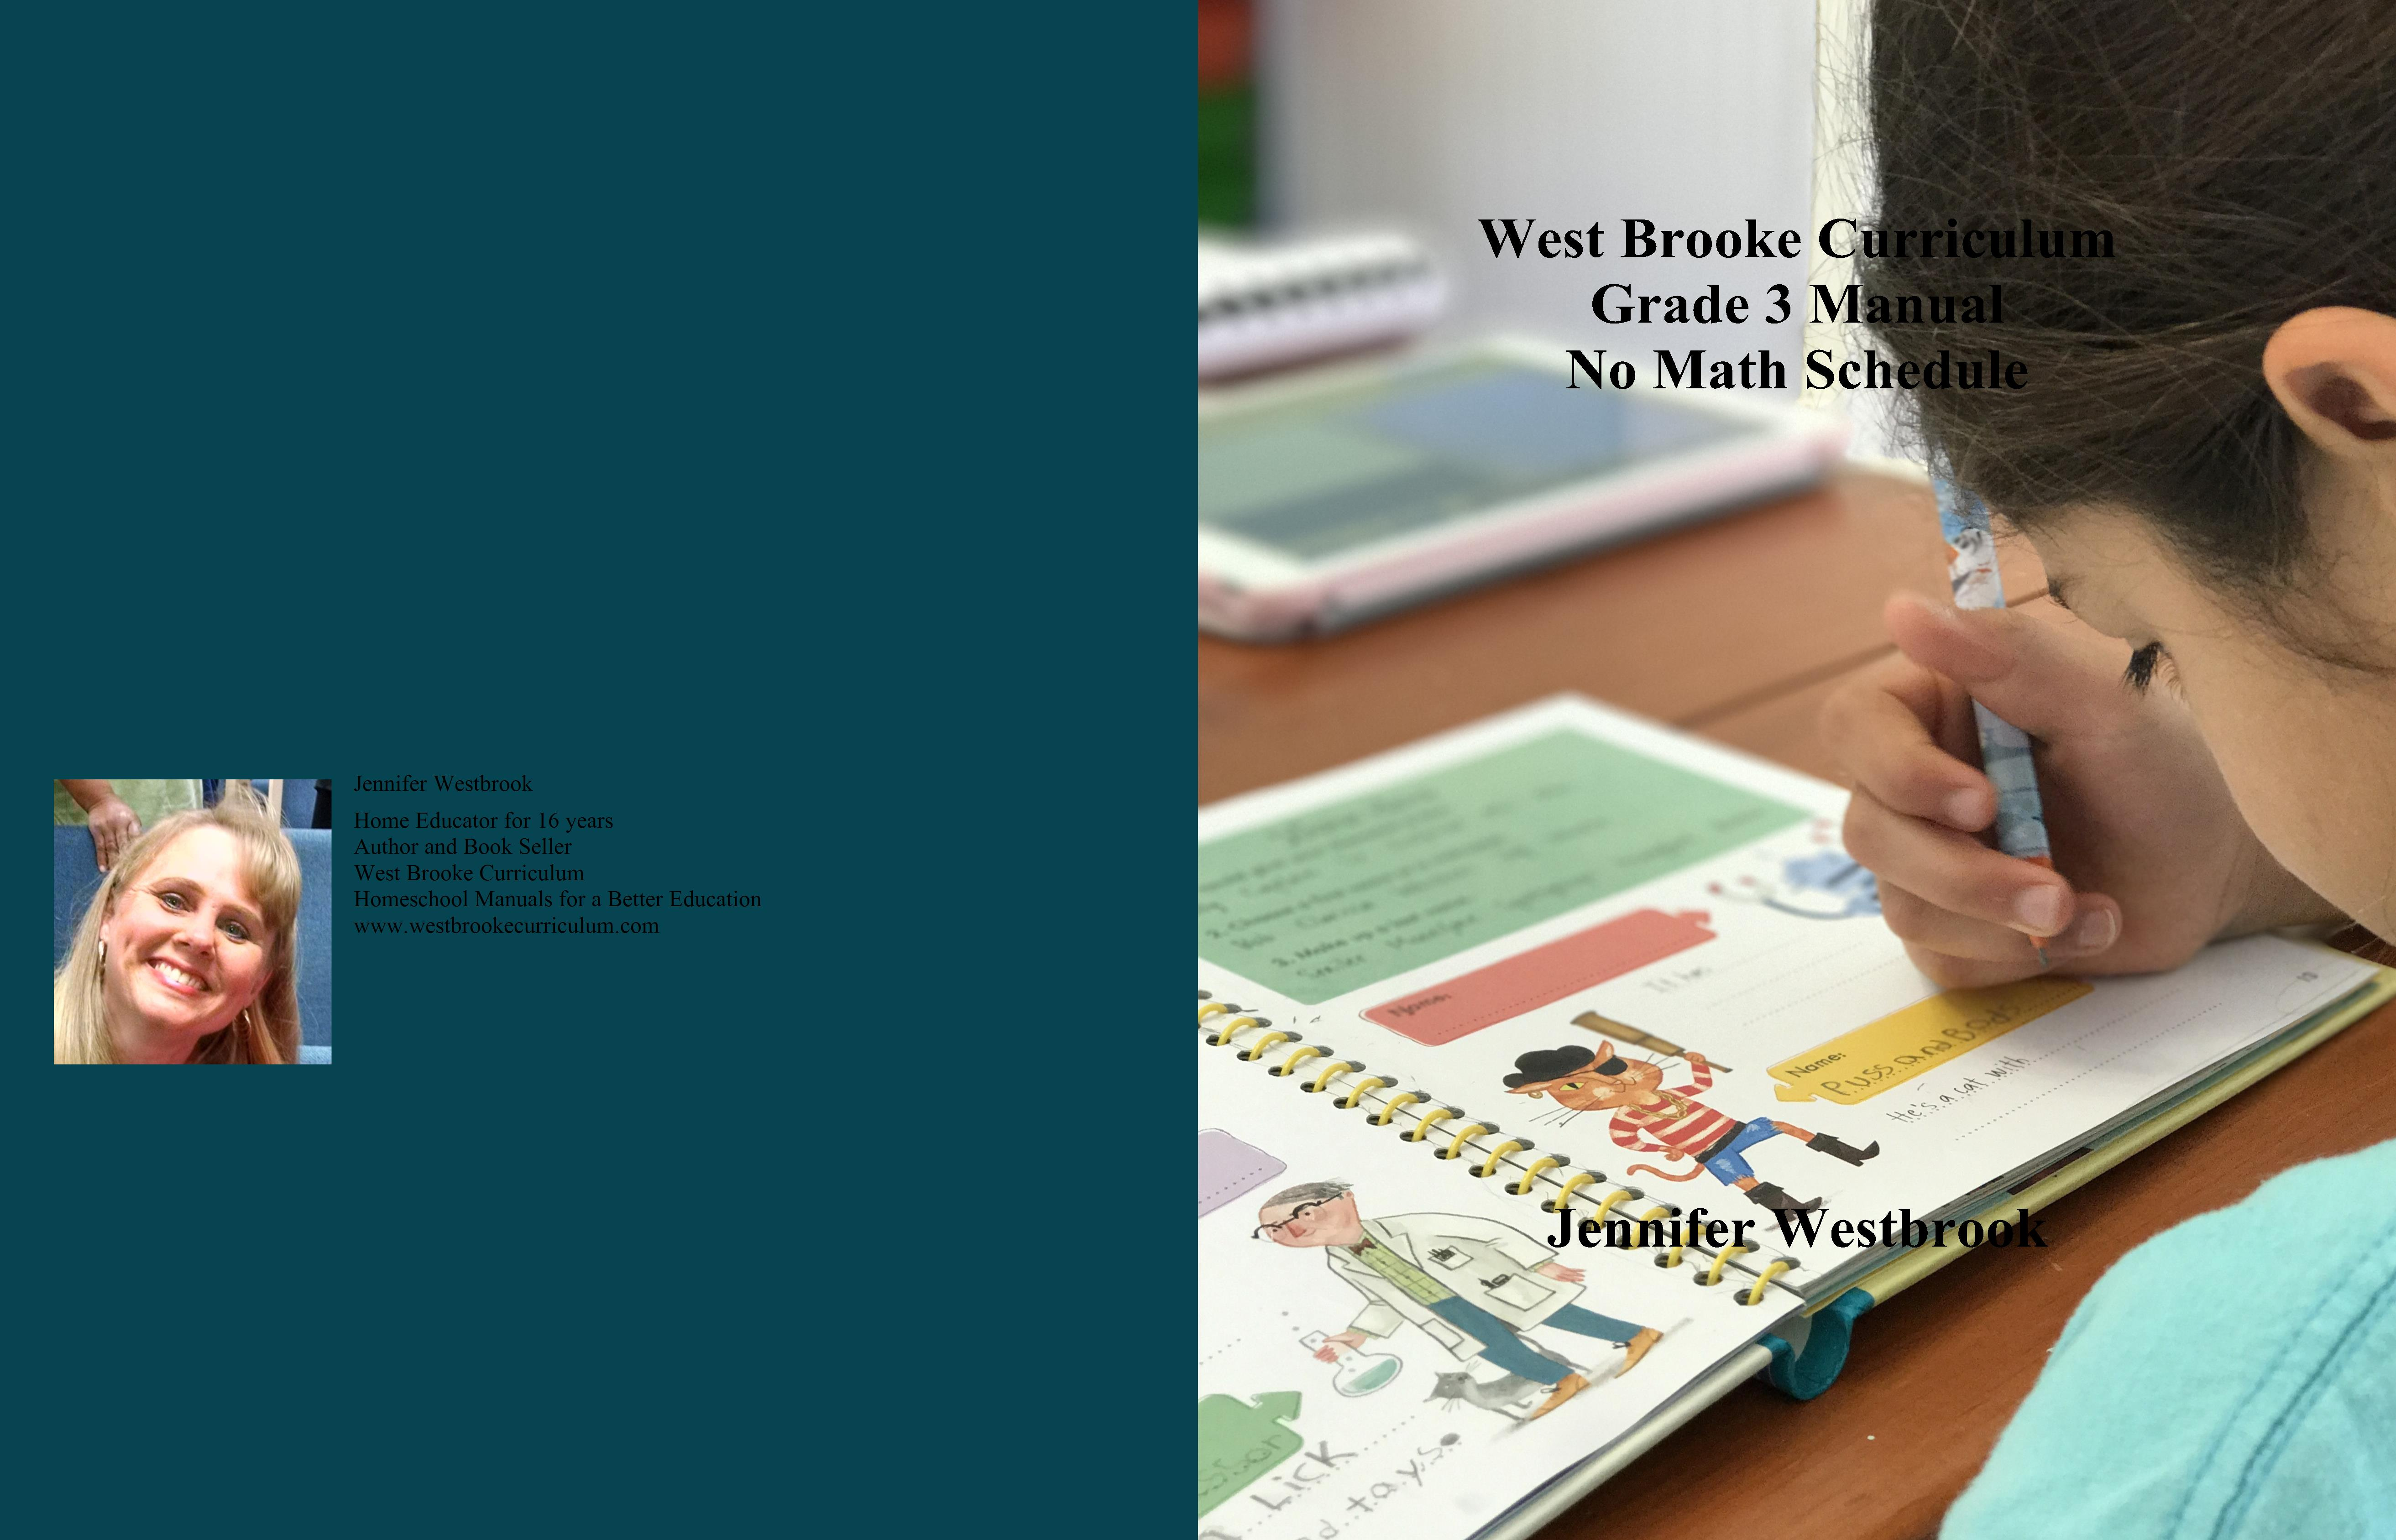 West Brooke Curriculum Grade 3 Manual No Math Schedule cover image